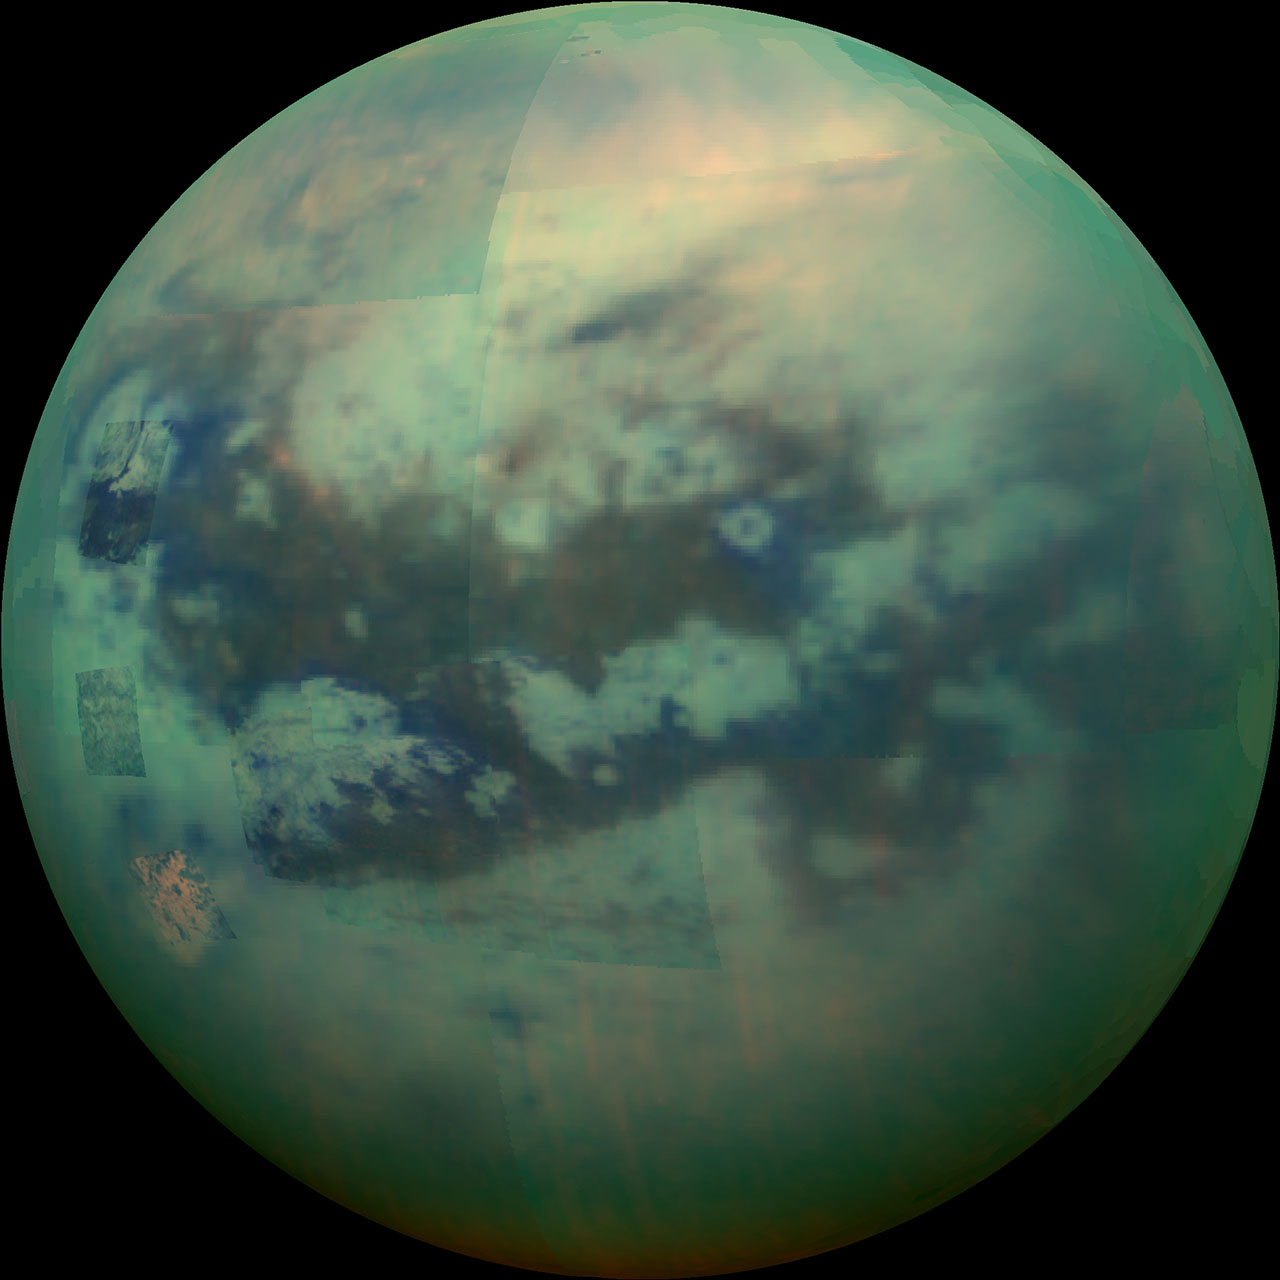 A false-color view of Titan shows a marble-like surface with light and dark patches